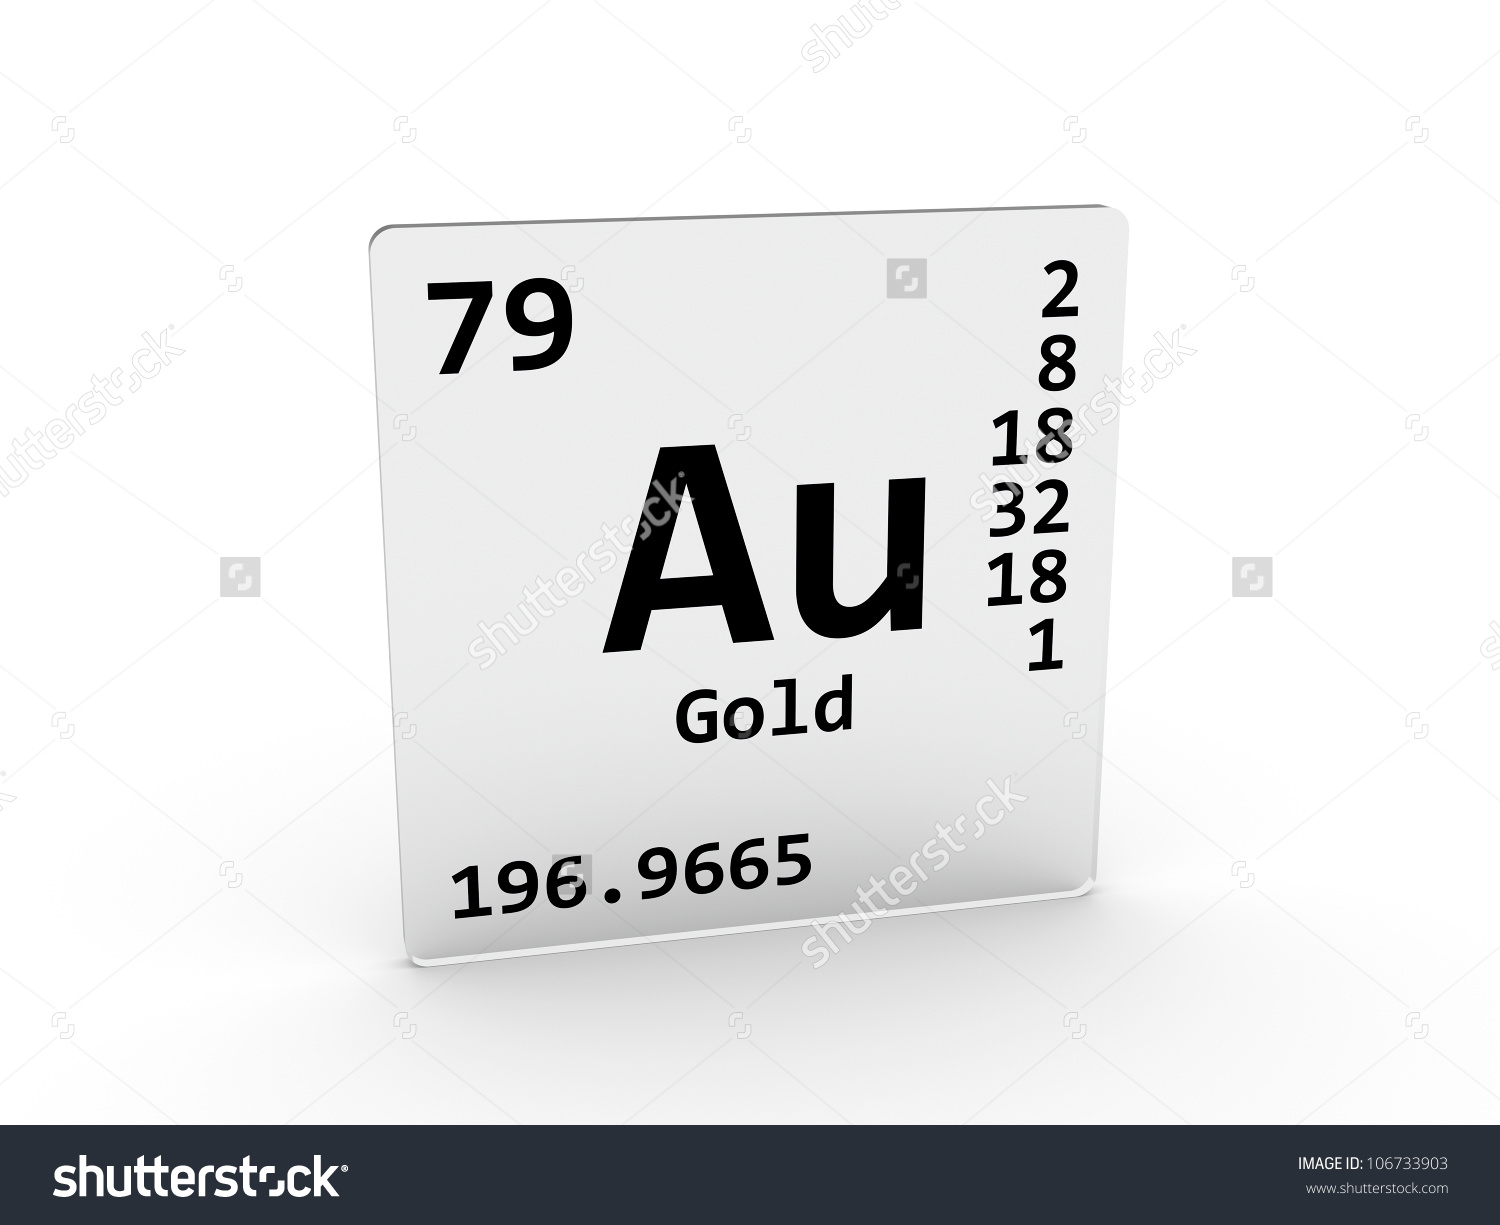 Gold periodic table symbol clipart clipground gold symbol au element periodic table stock illustration 106733903 urtaz